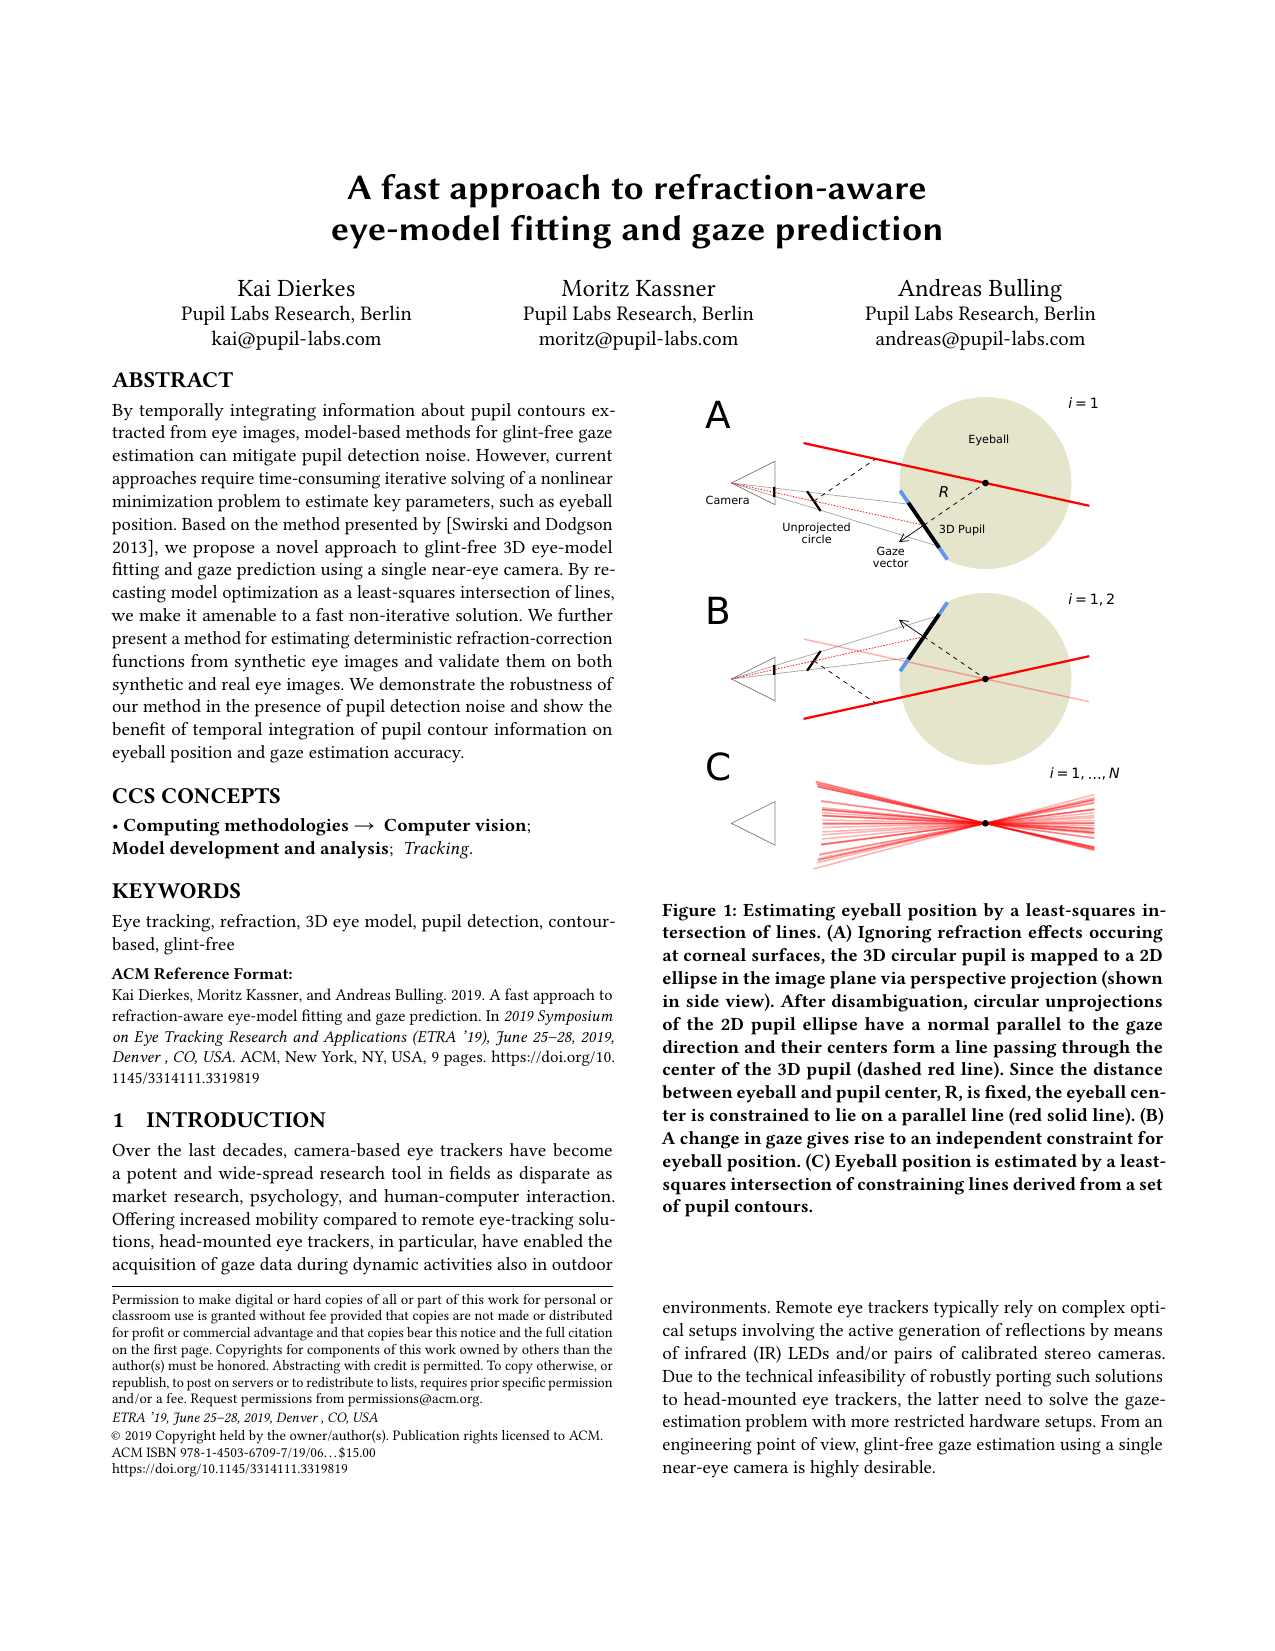 A fast approach to refraction-aware 3D eye-model fitting and gaze prediction